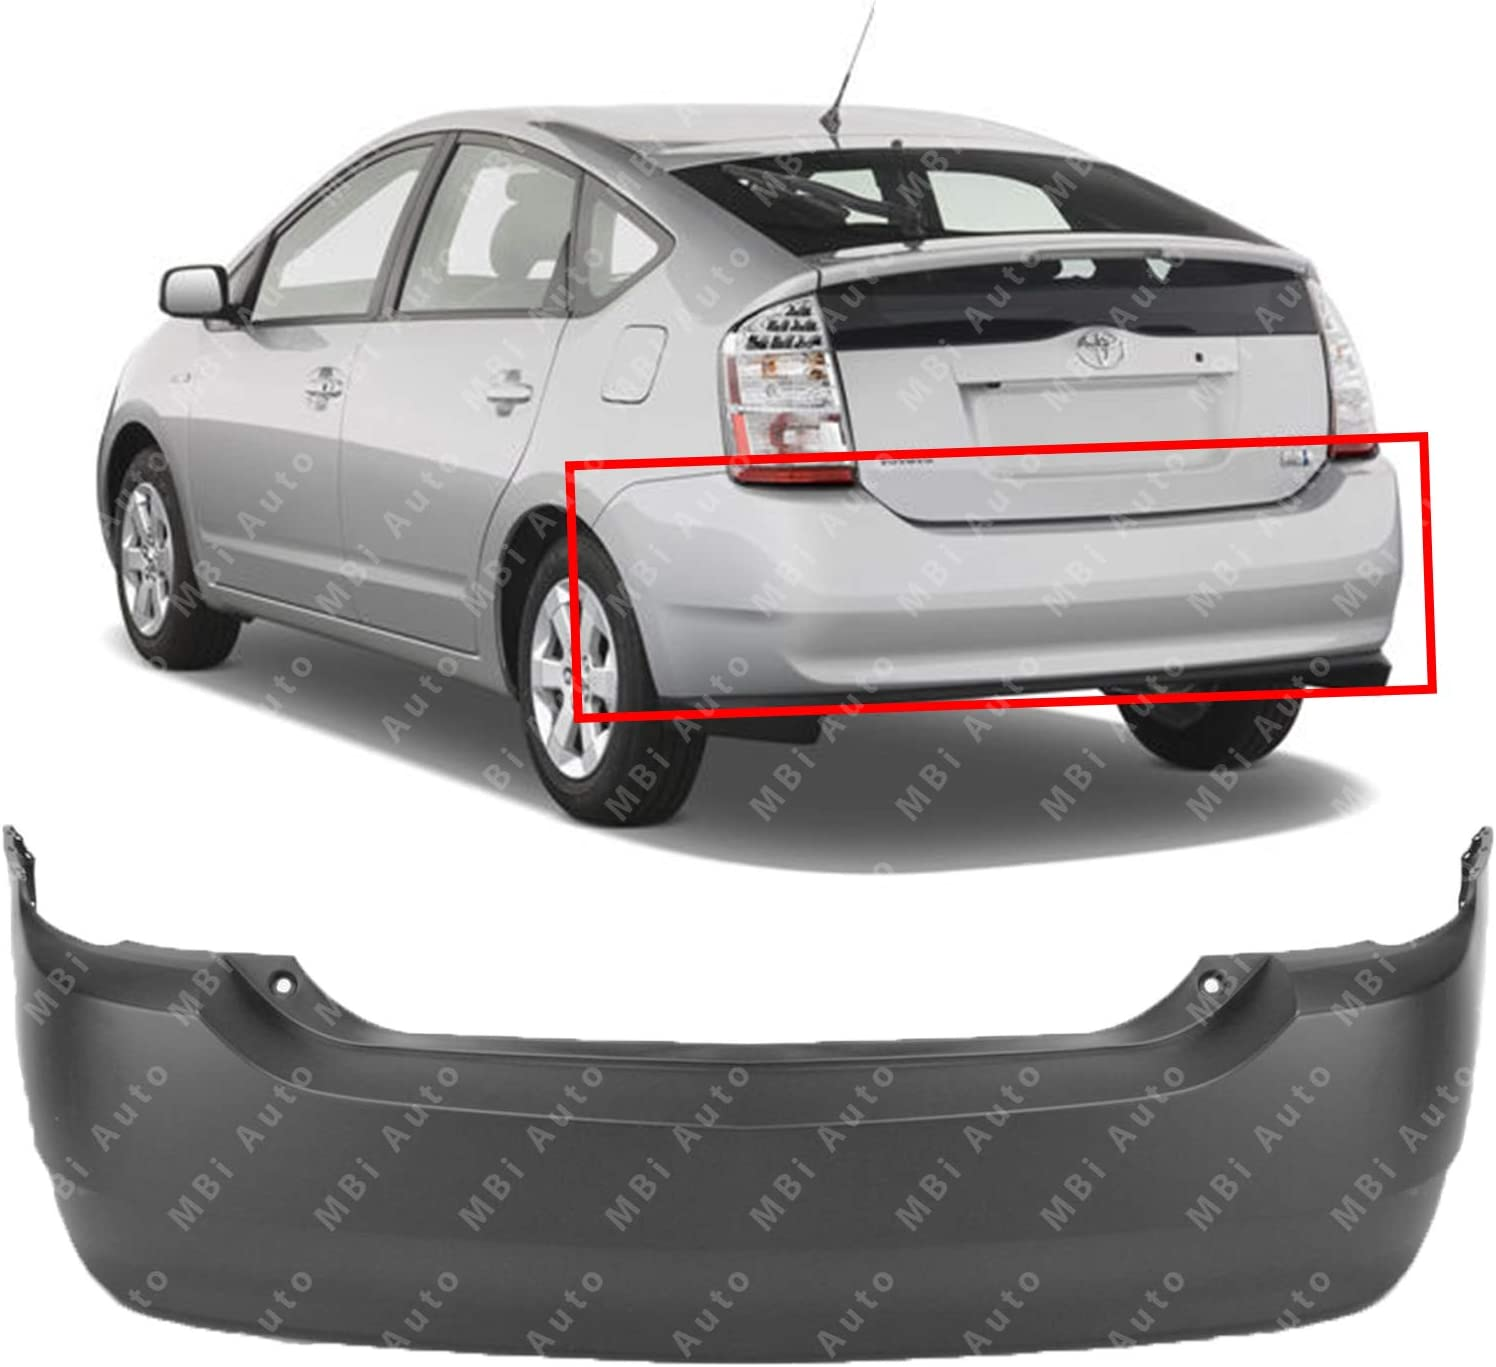 NEW REAR BUMPER COVER PRIMED FITS 2010-2015 TOYOTA PRIUS TO1100280